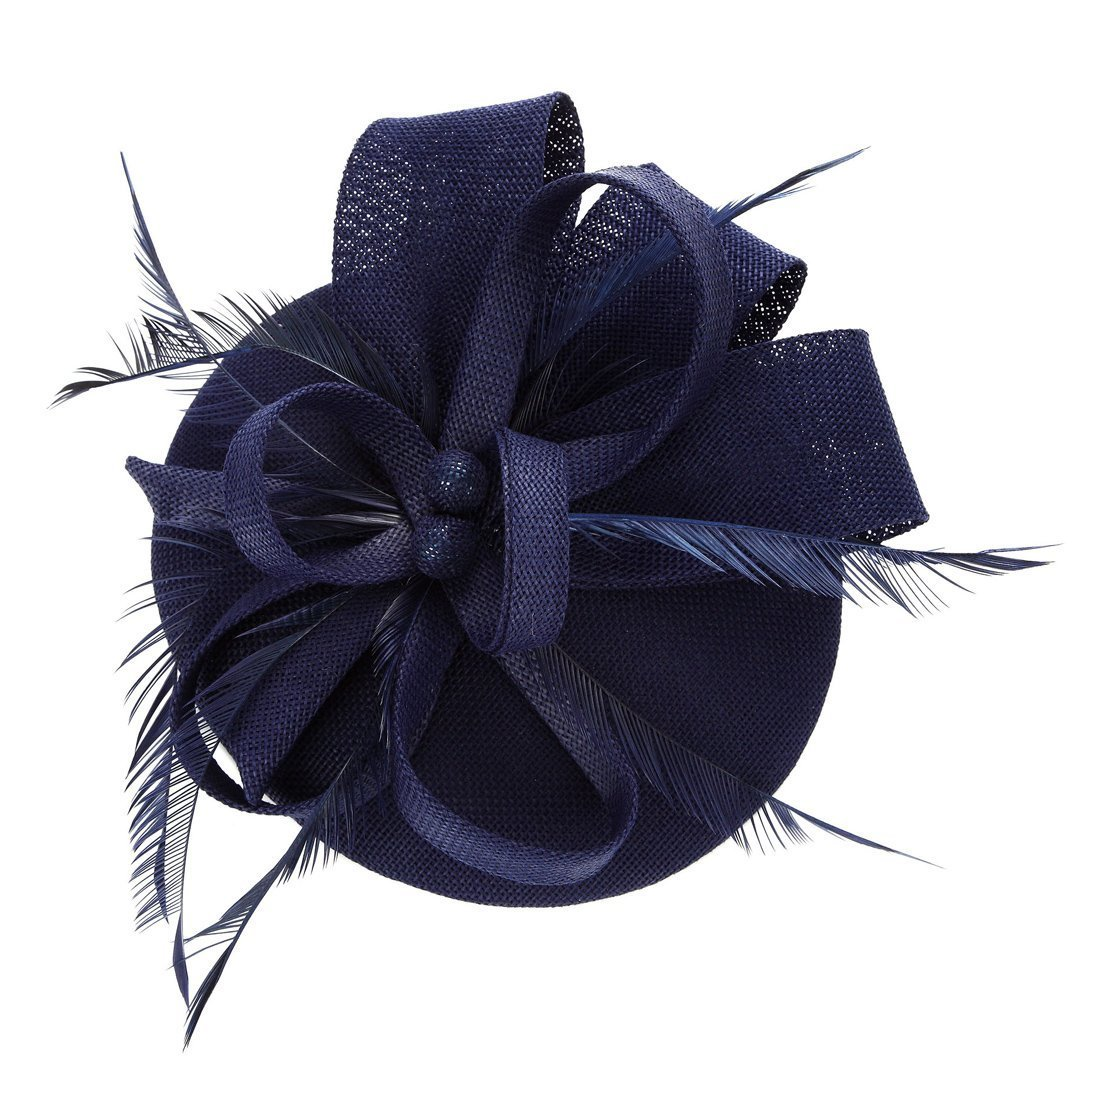 Merya Dress DotVeil Kentucky Derby Fascinator Hats Feather Prom Cocktail Tea Party Hats FastorCB001Black